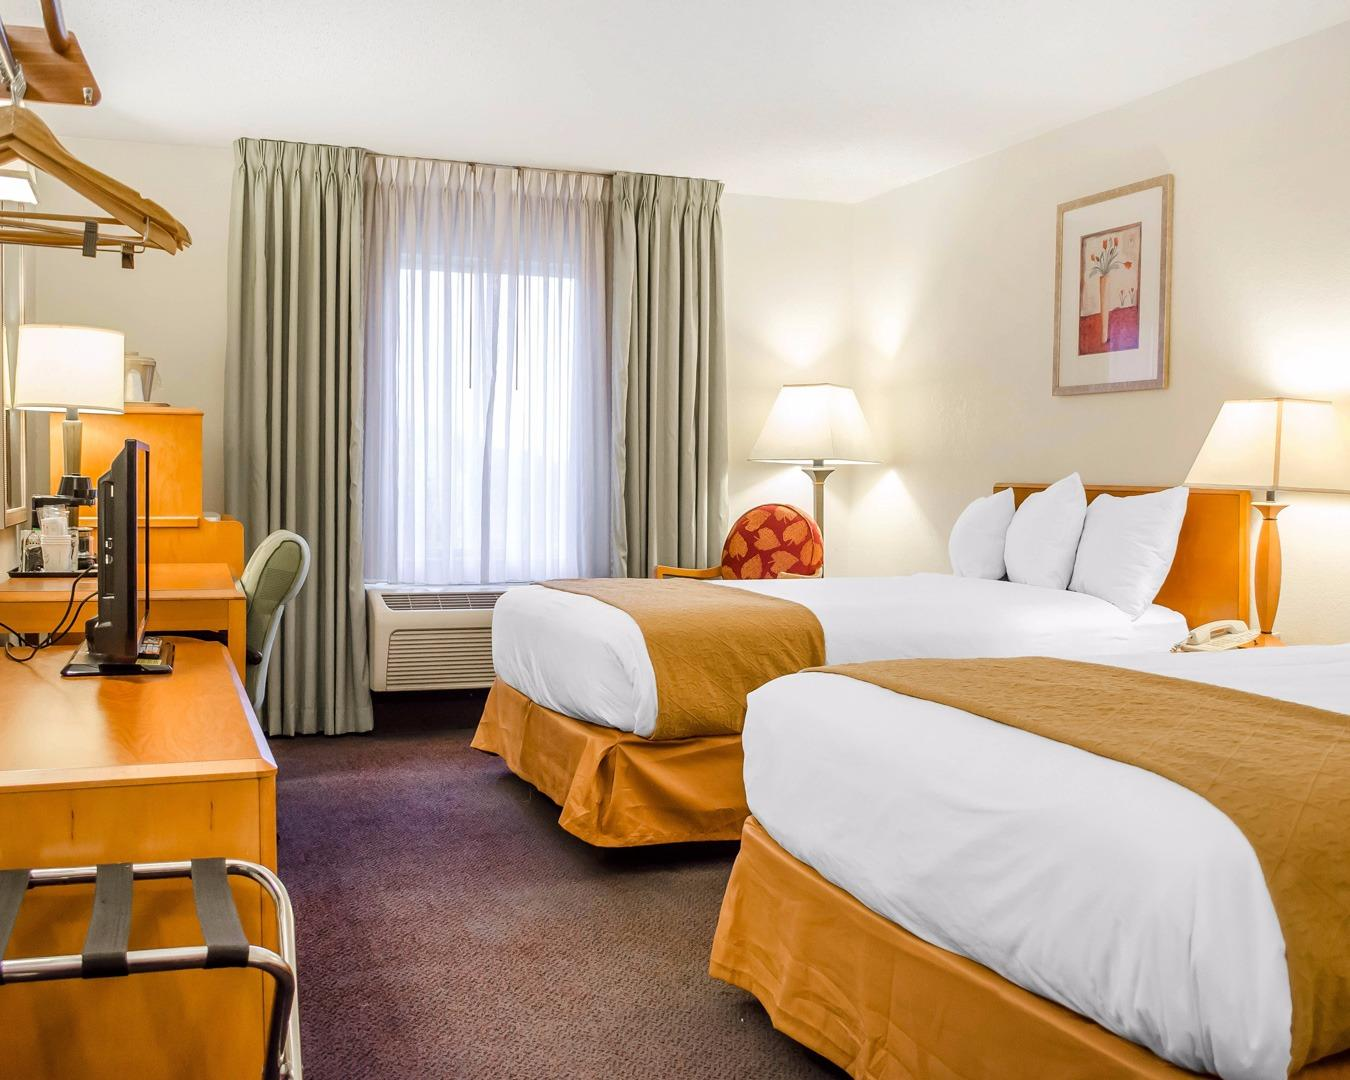 Quality Inn New Cumberland - Harrisburg South at 175 Beacon Hill Blvd, New Cumberland, PA on Fave